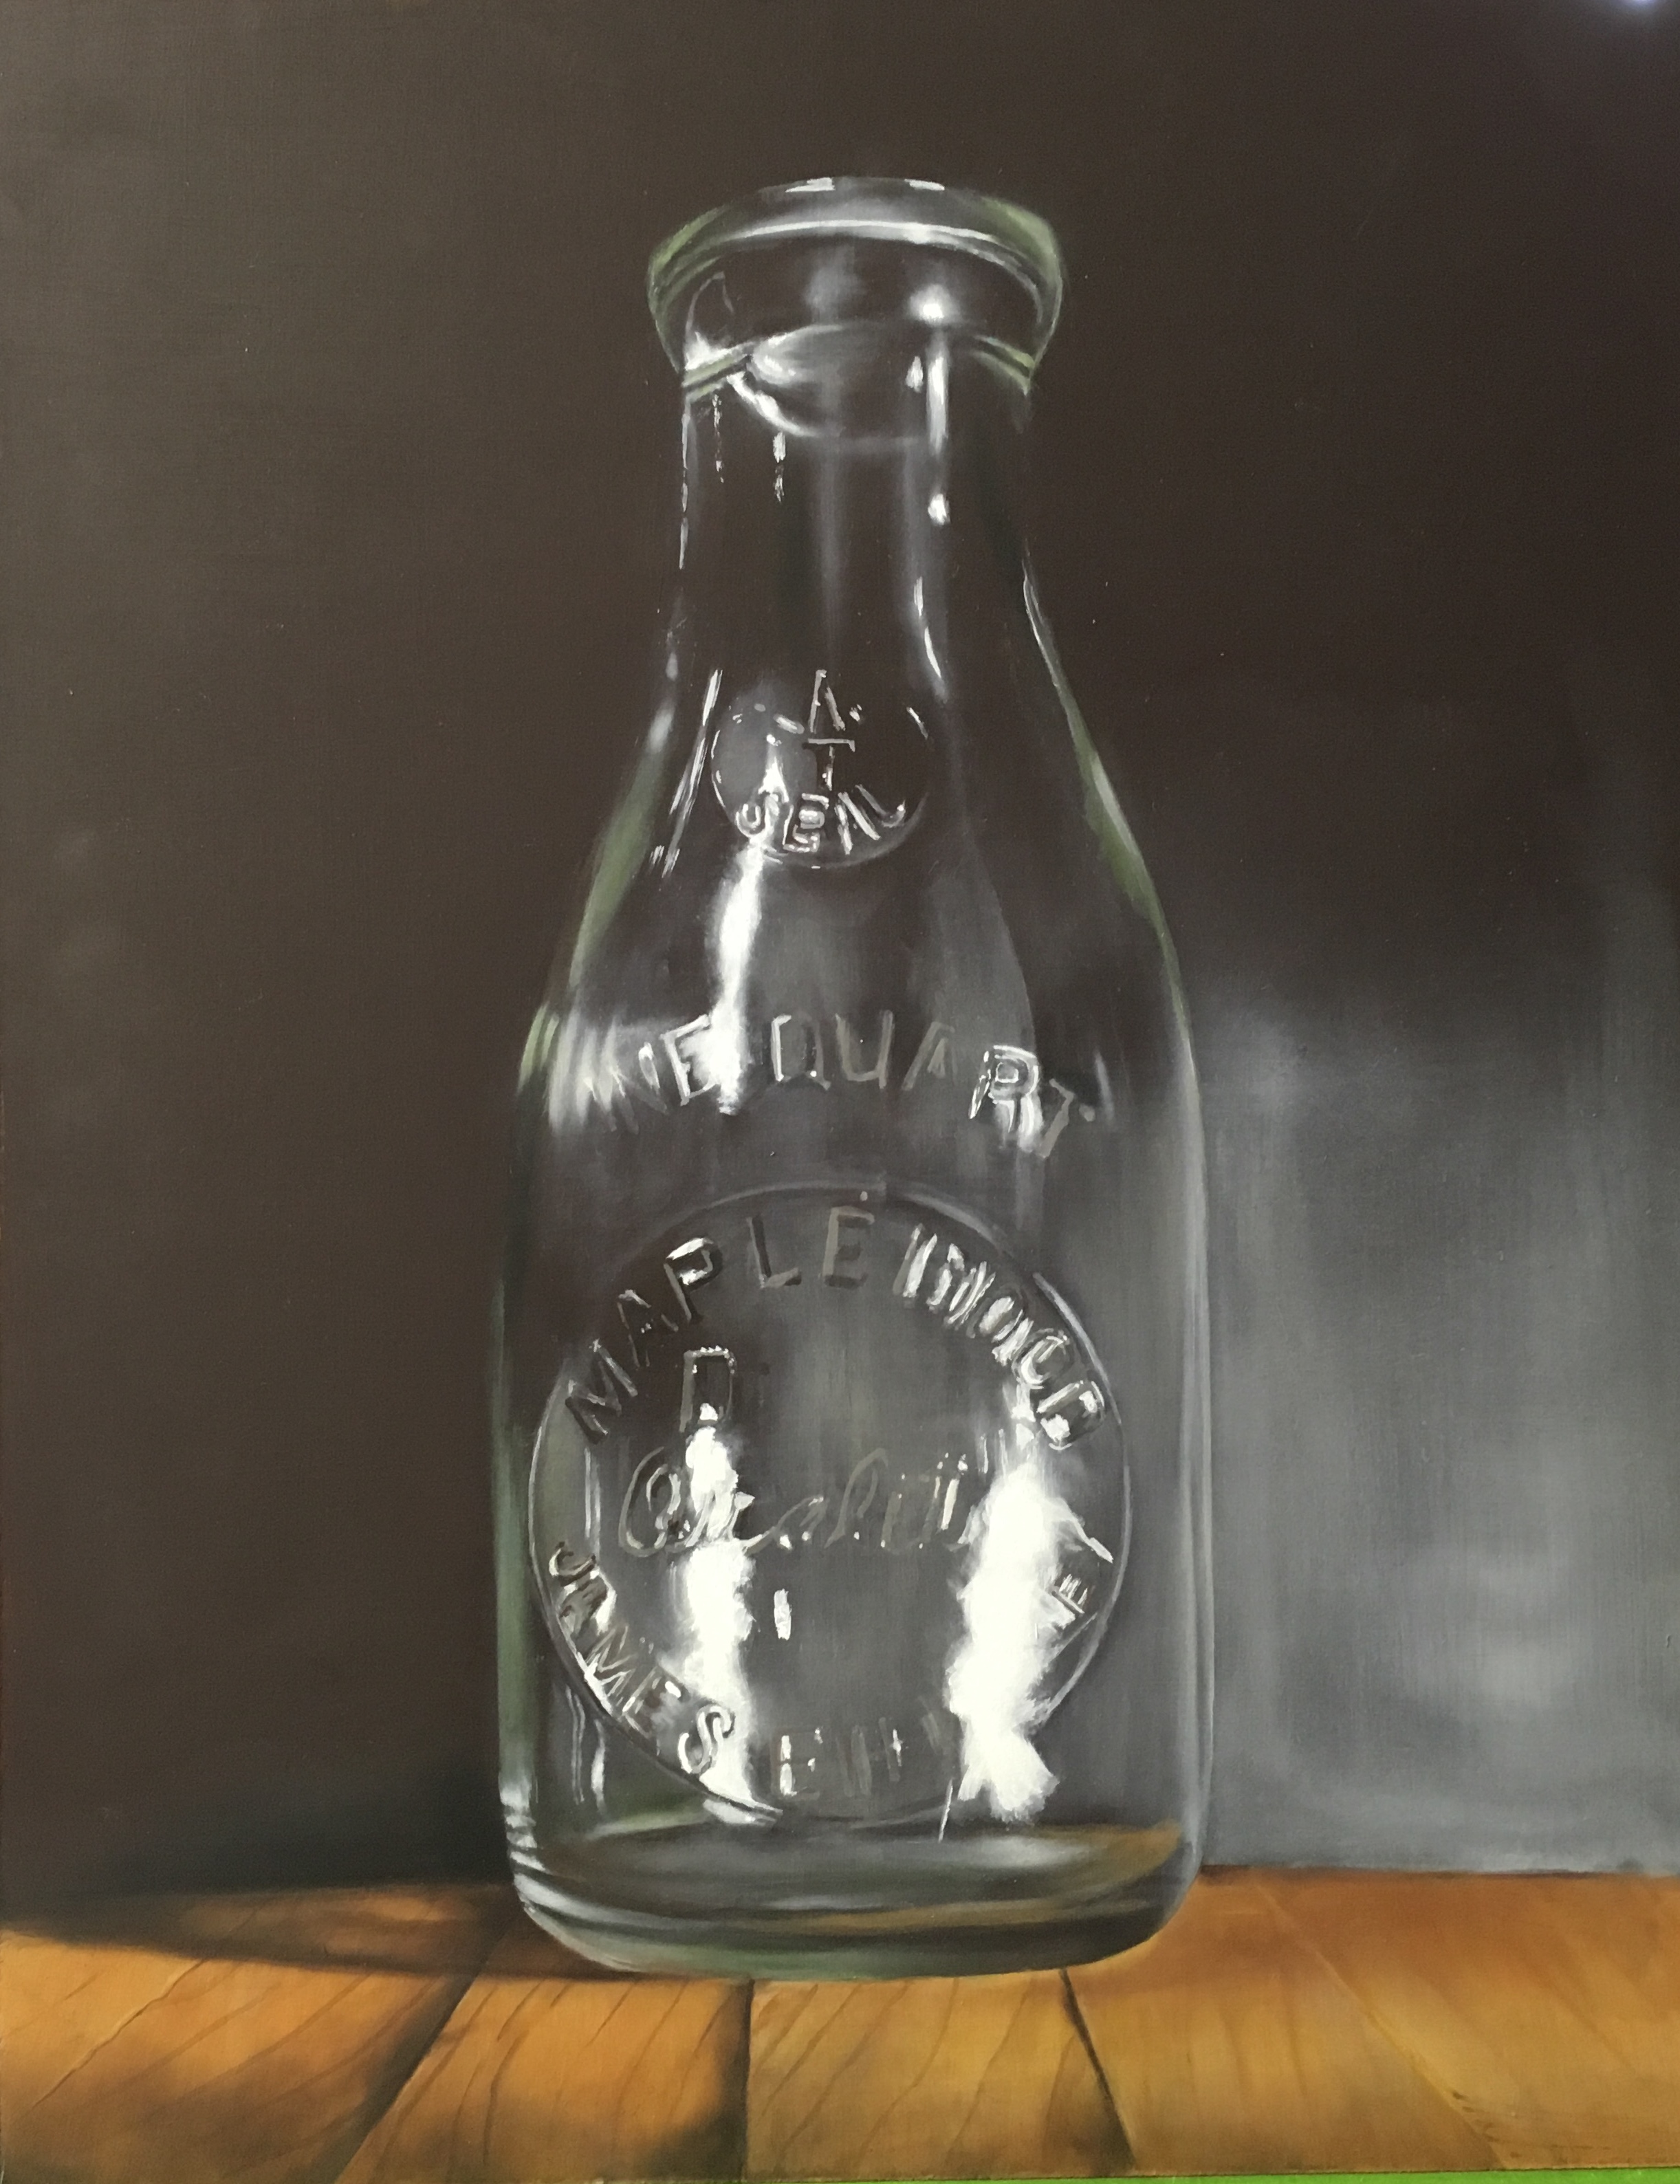 This is an old fashioned milk bottle that i picked up at a yard sale in Pennsylvania. I liked the way the light caused a high shine that blurred out some of the lettering embossed in the glass.